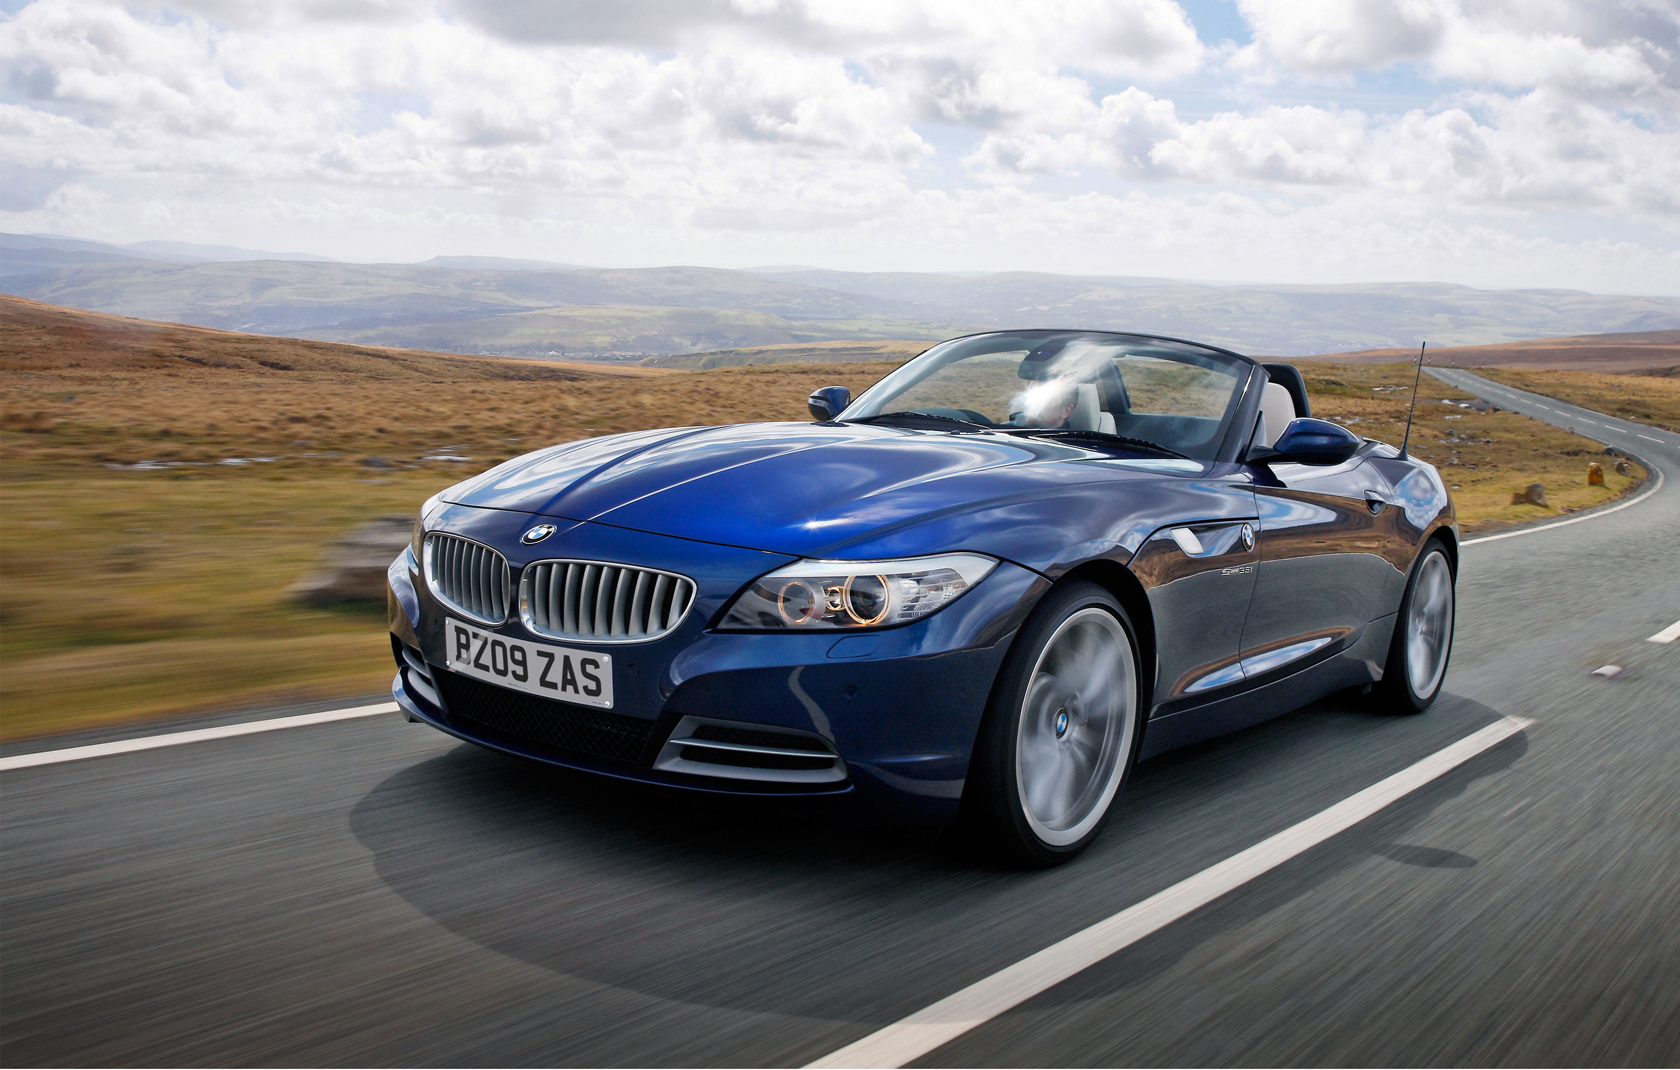 New Set Of Bmw Z4 (e89) Wallpapers In Deep Sea Blue